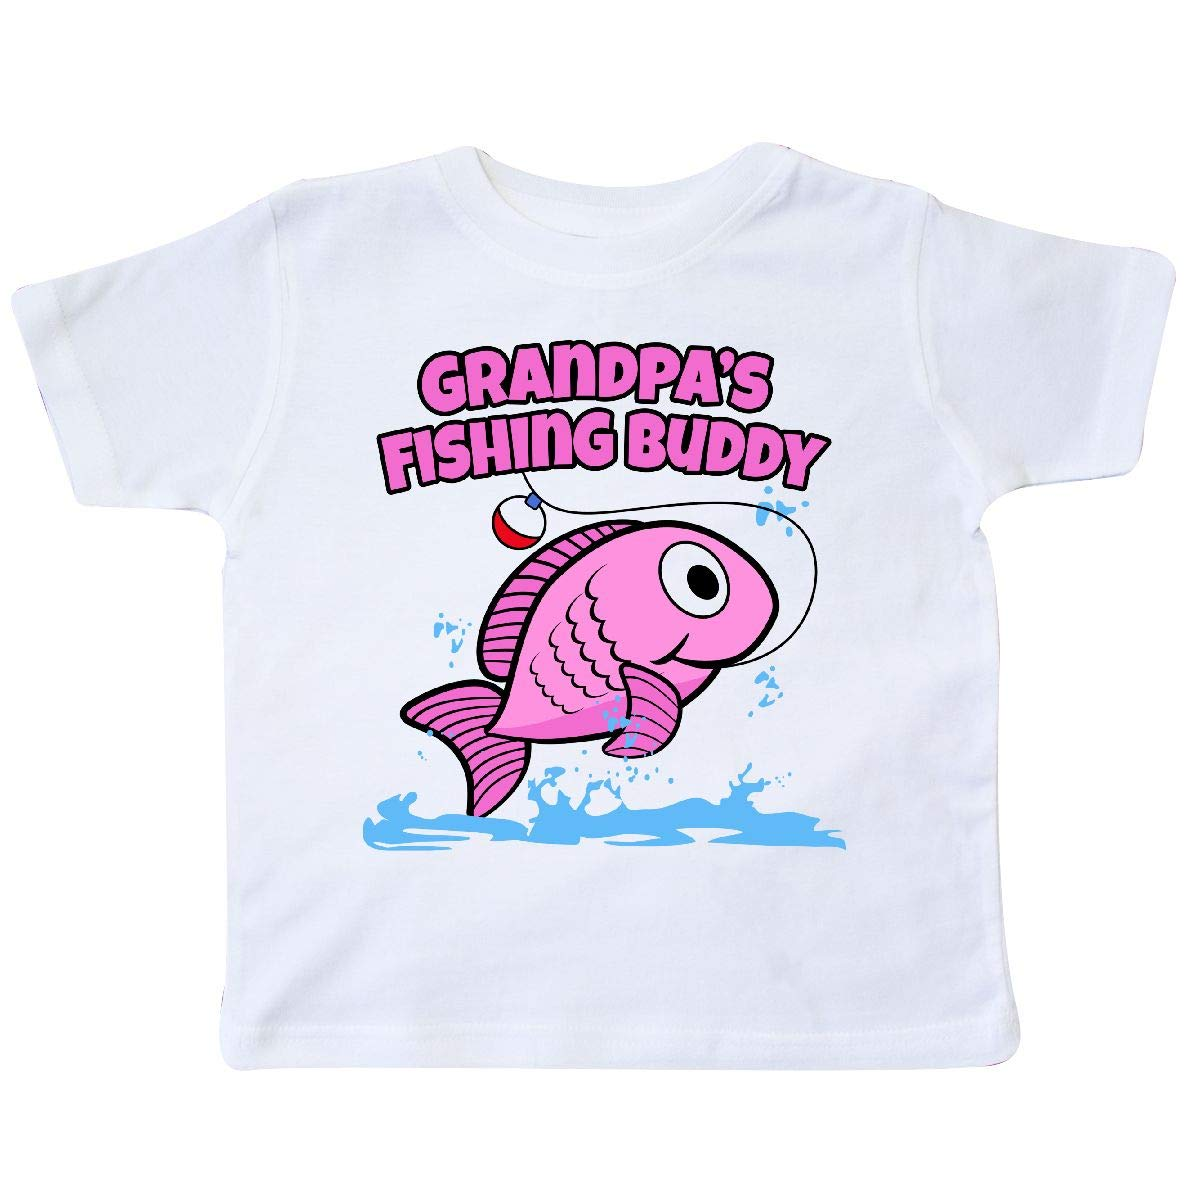 inktastic Grandpas Fishing Buddy Toddler T-Shirt Pink